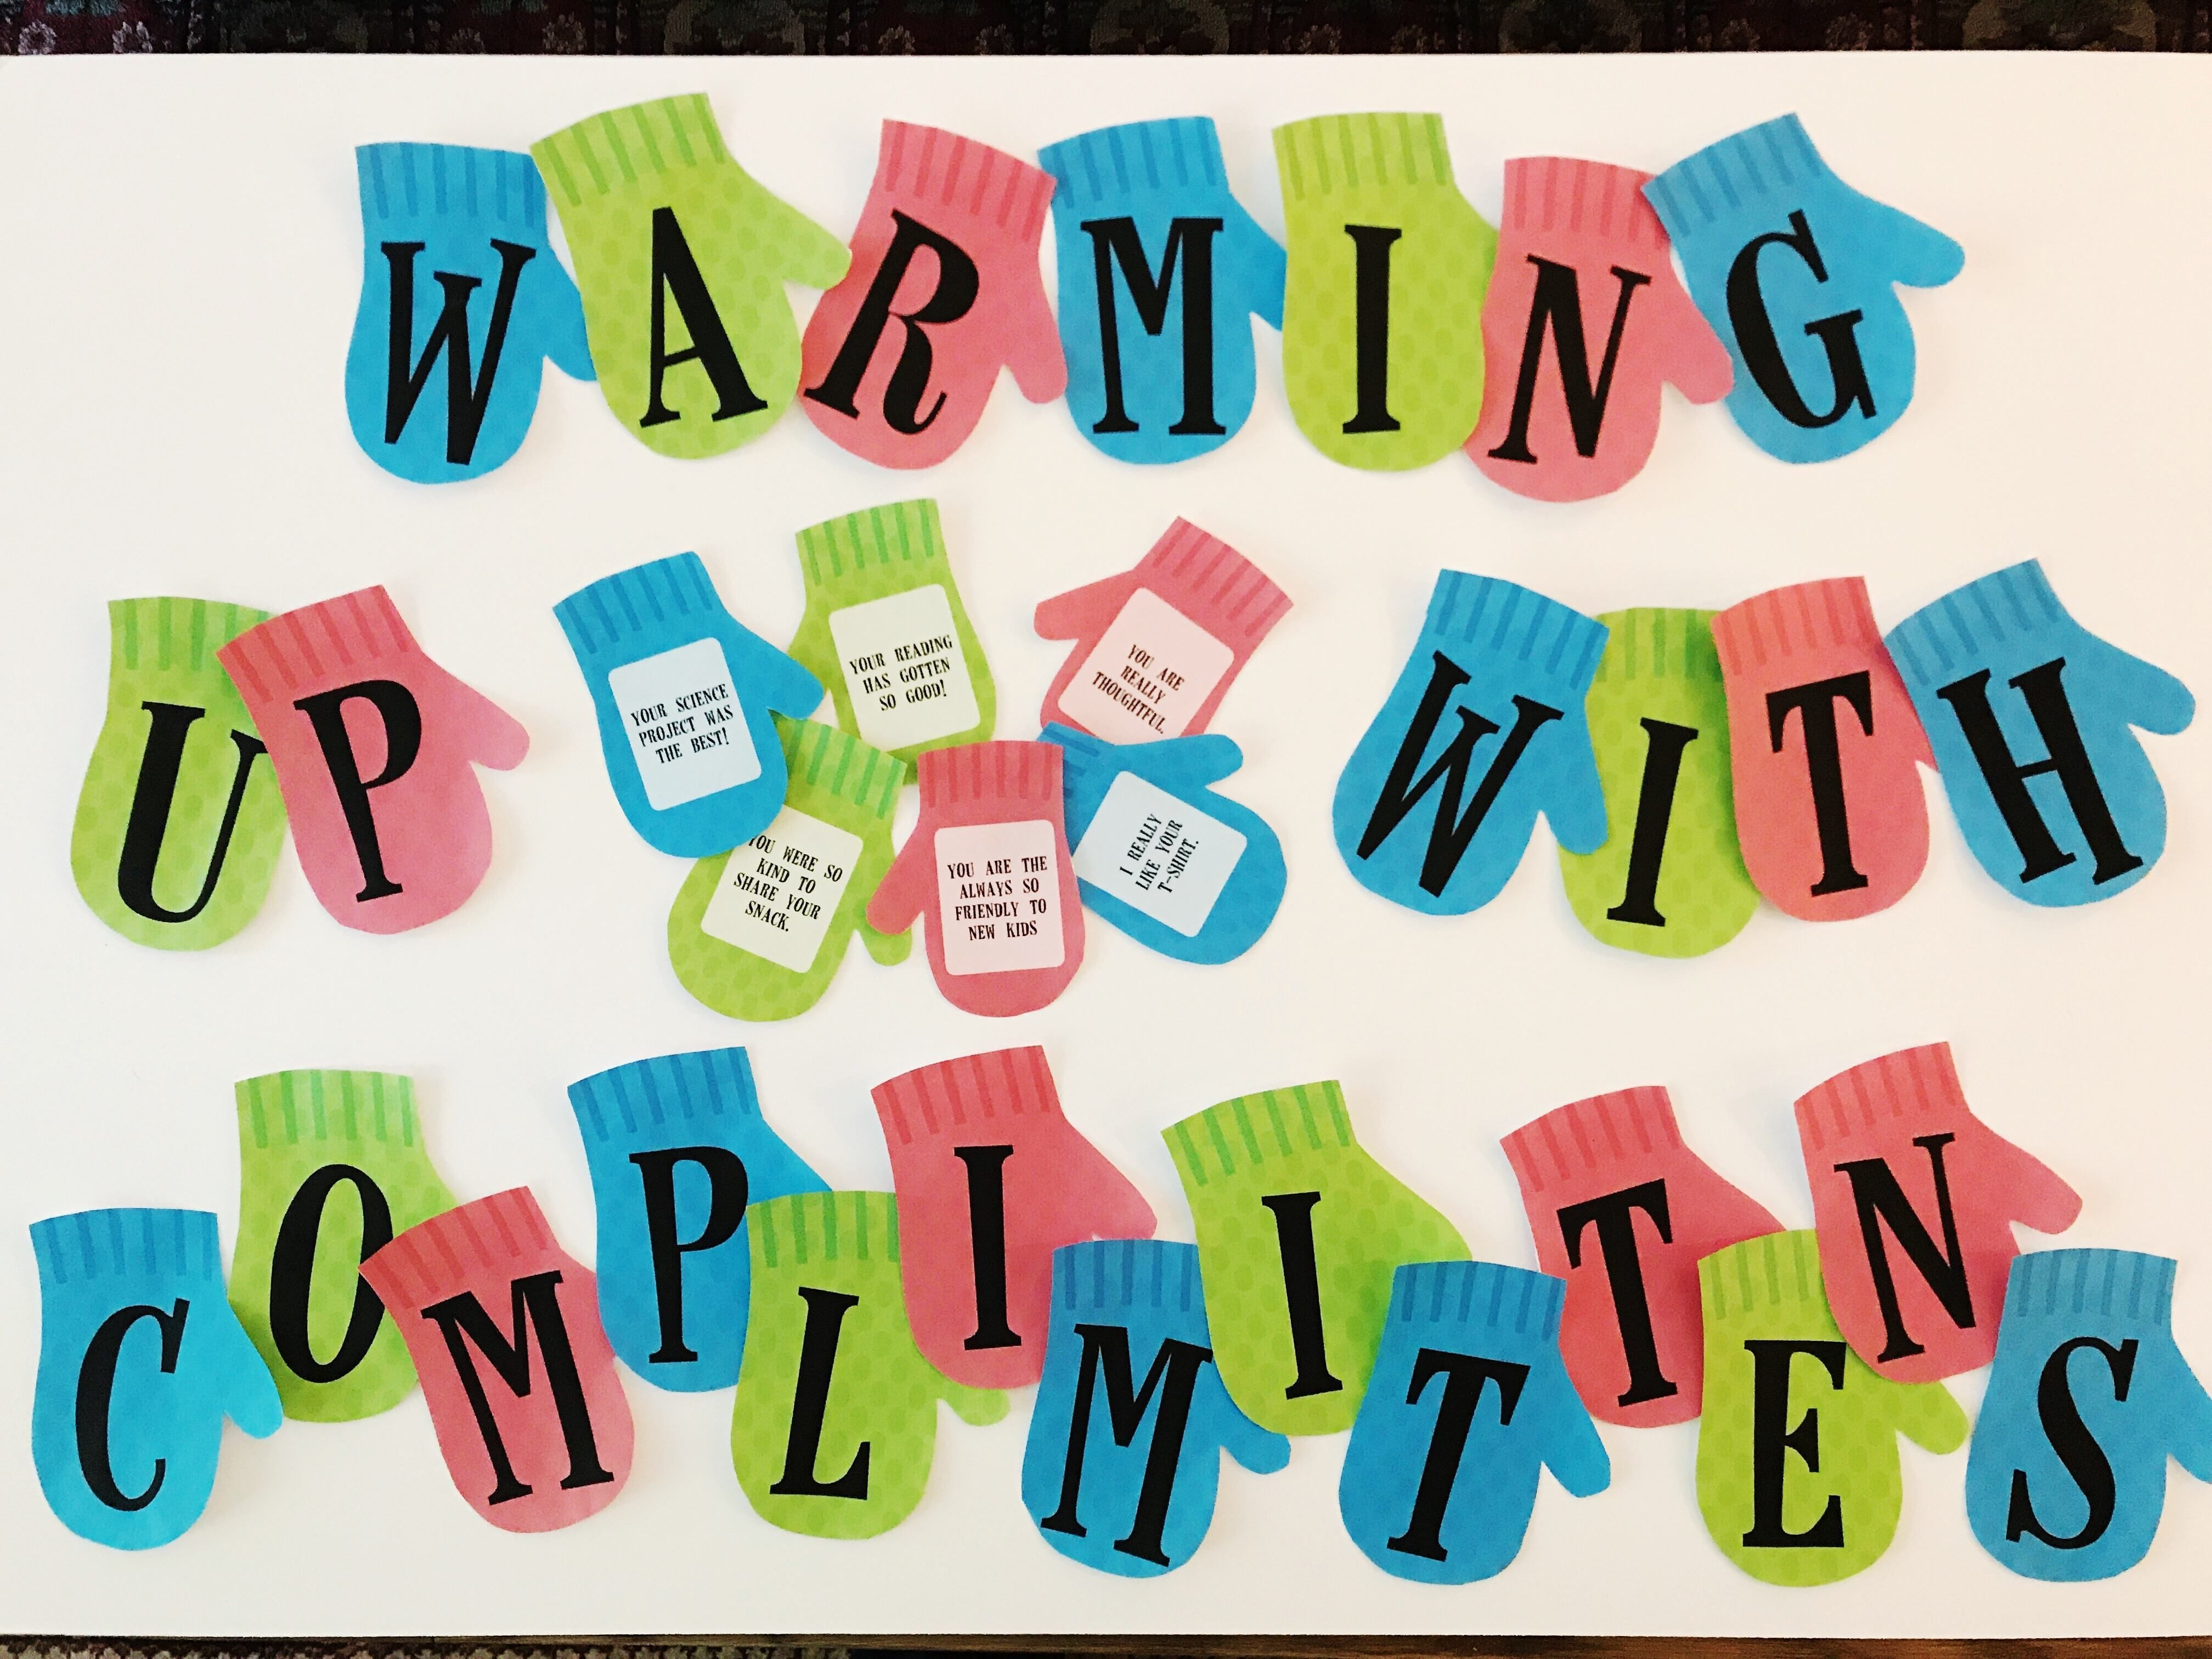 Teaching Compliments To Build Empathy